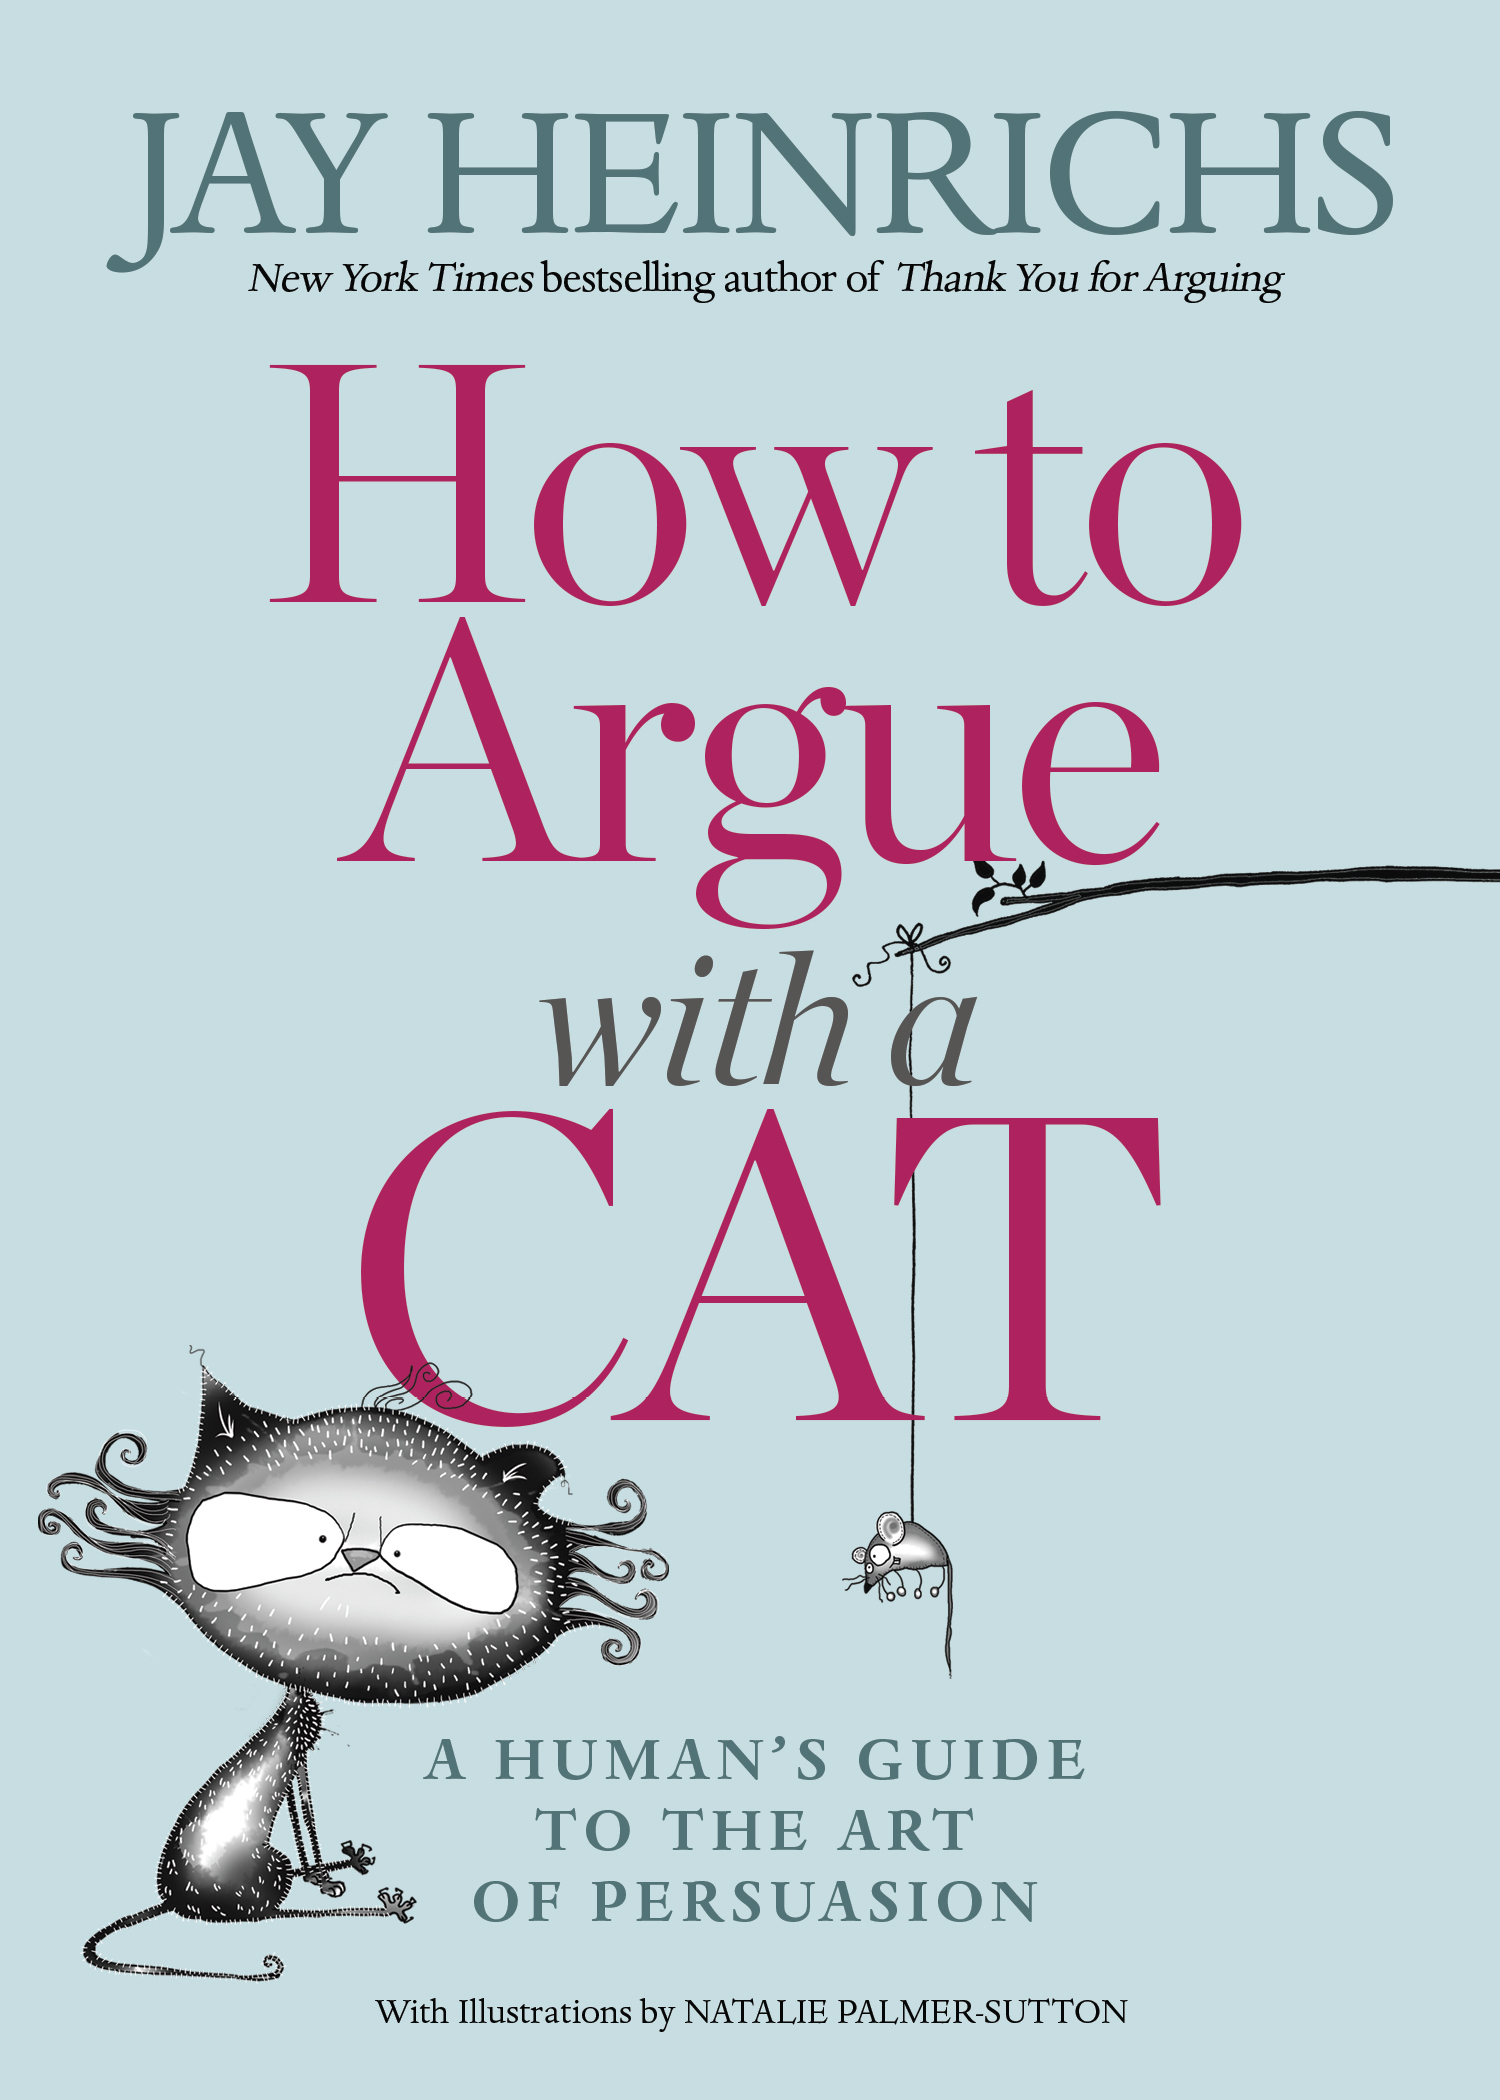 HOW TO ARGUE WITH A CAT | COOL BOOK COVER | JAY HEINRICHS | AUTHOR | NATALIE PALMER-SUTTON| ILLUSTRATOR.jpg